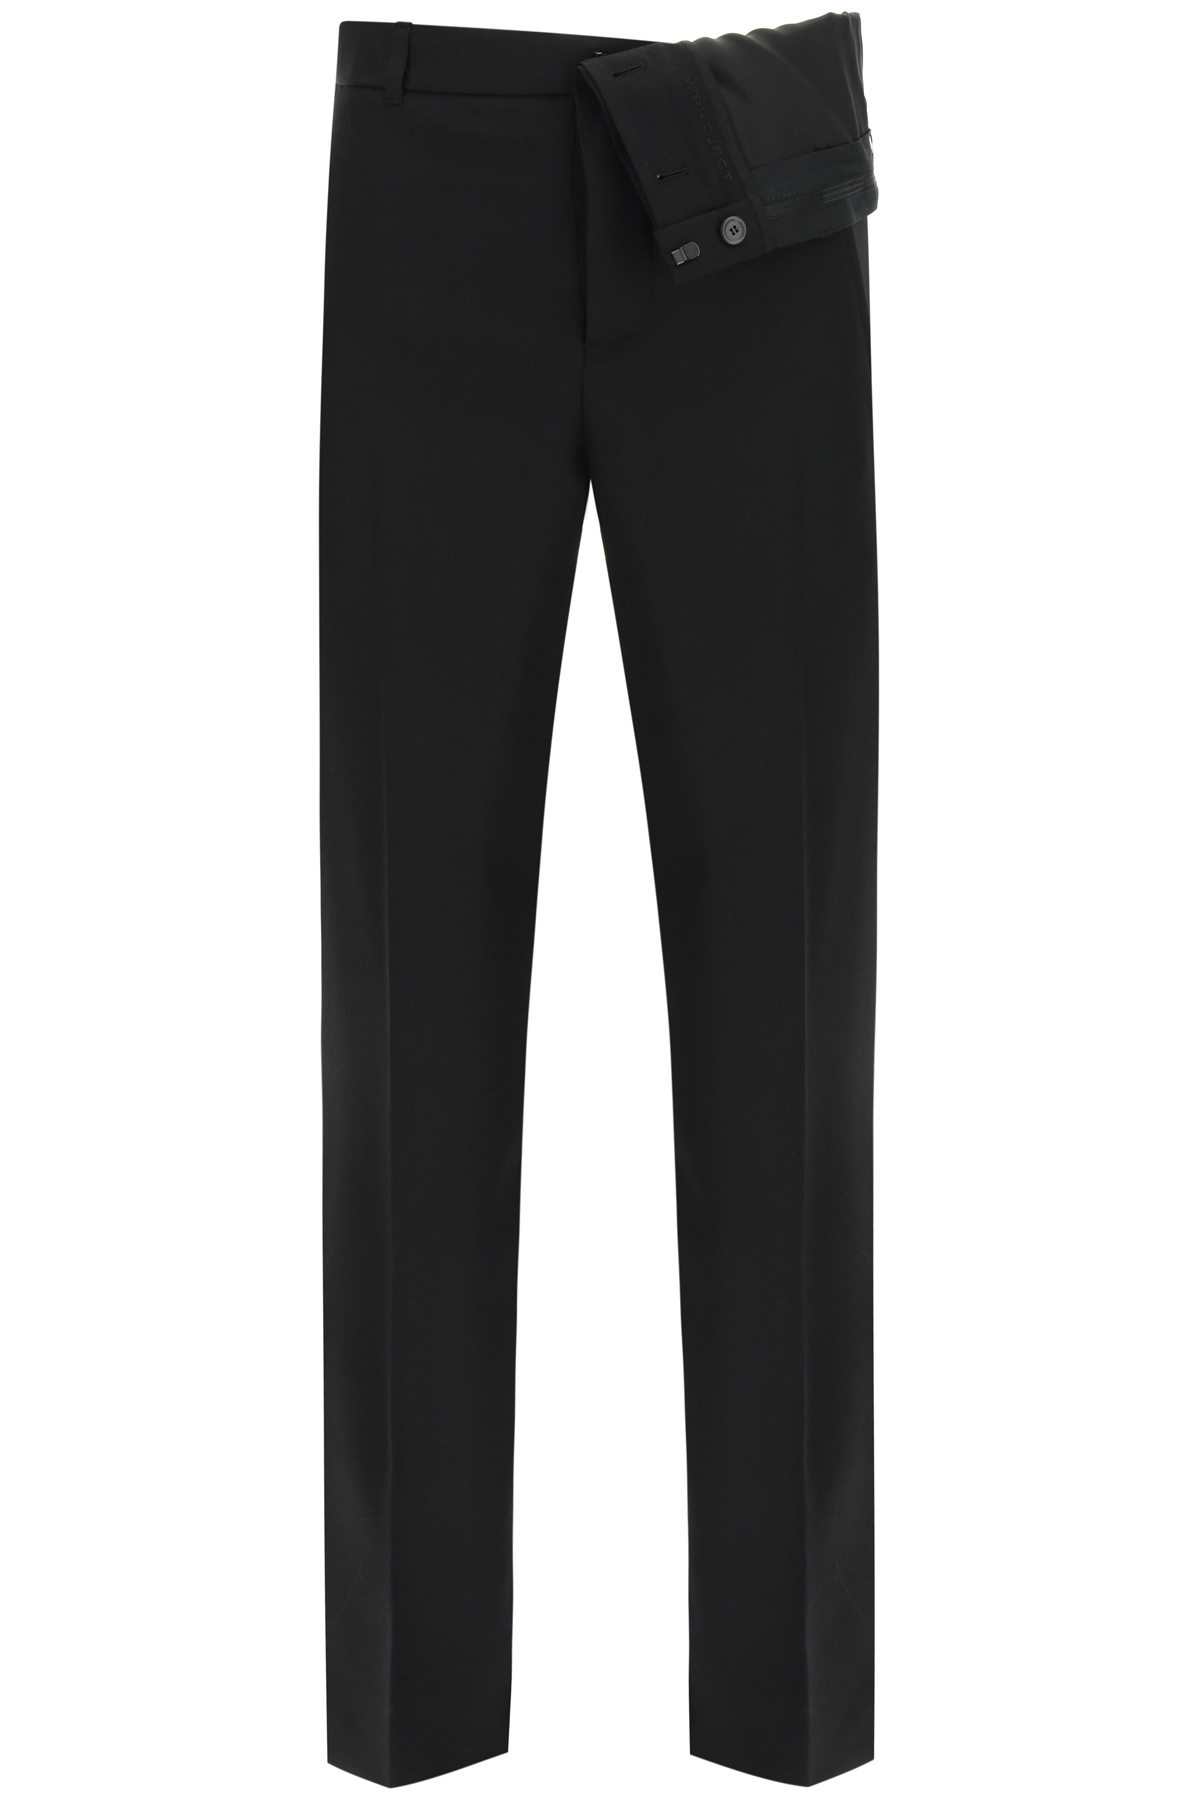 Y/project Pants TROUSERS WITH ASYMMETRIC WAIST